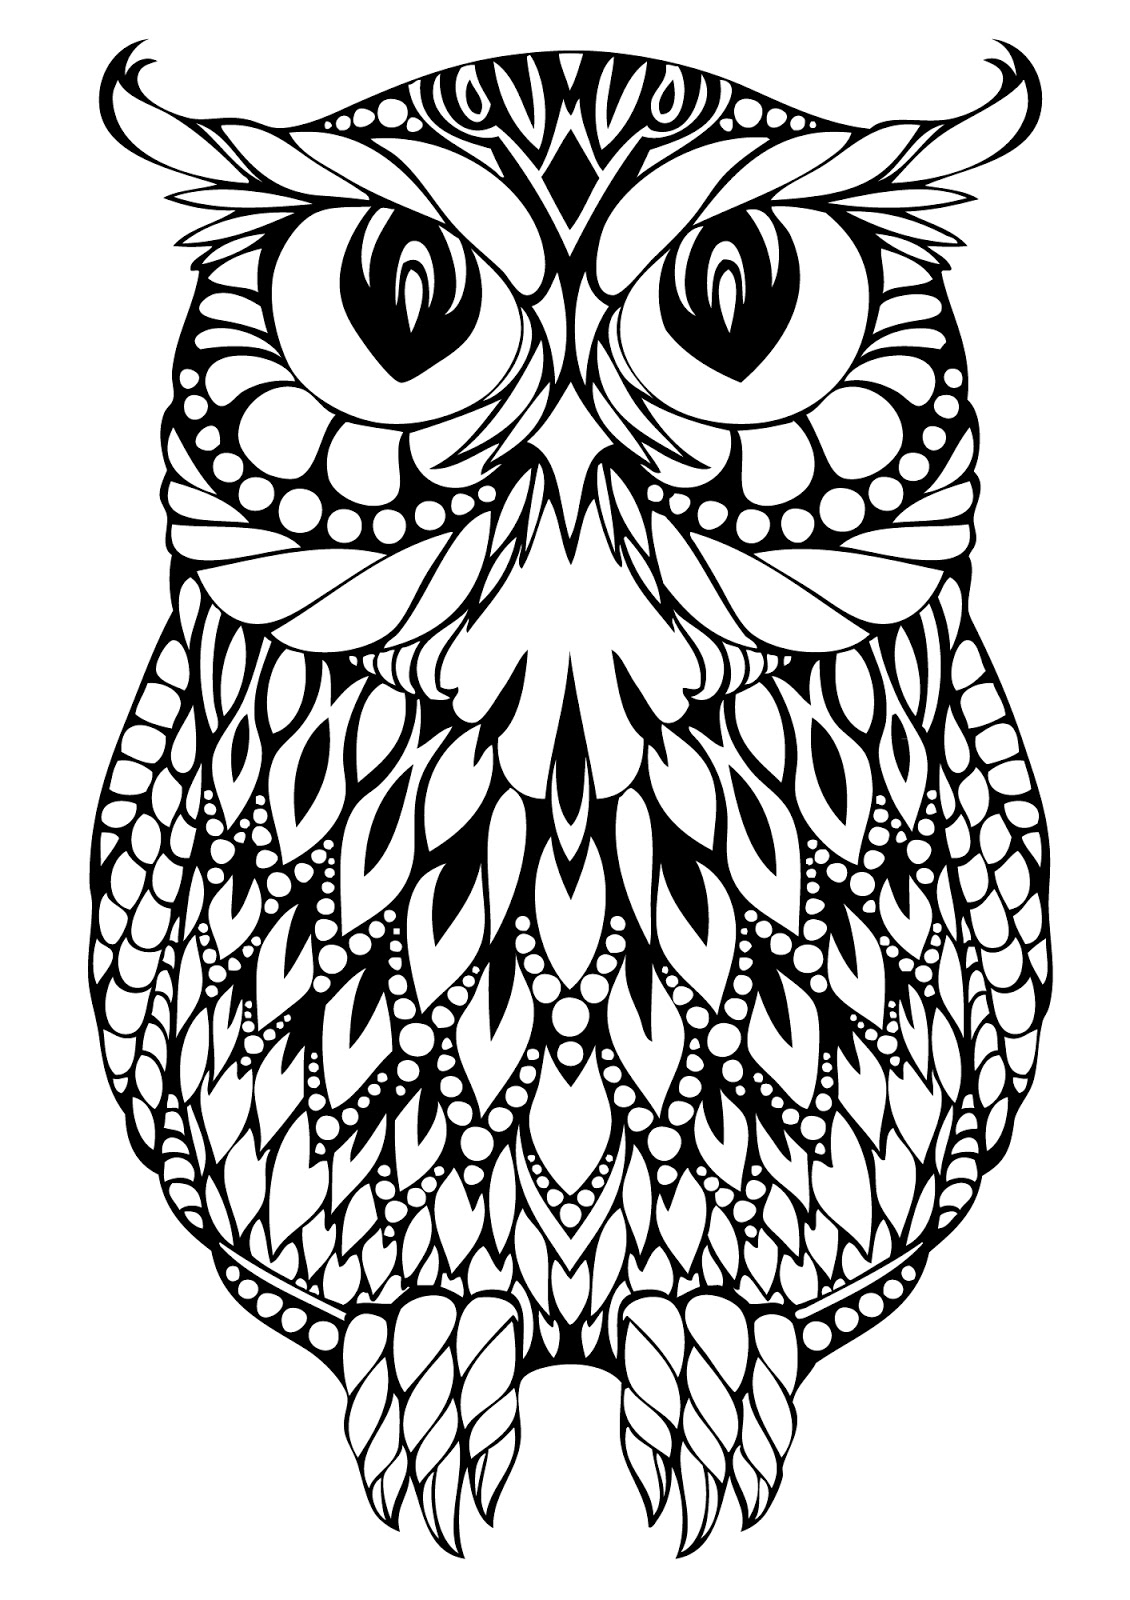 coloring prints for adults adult coloring page coloring home adults prints for coloring